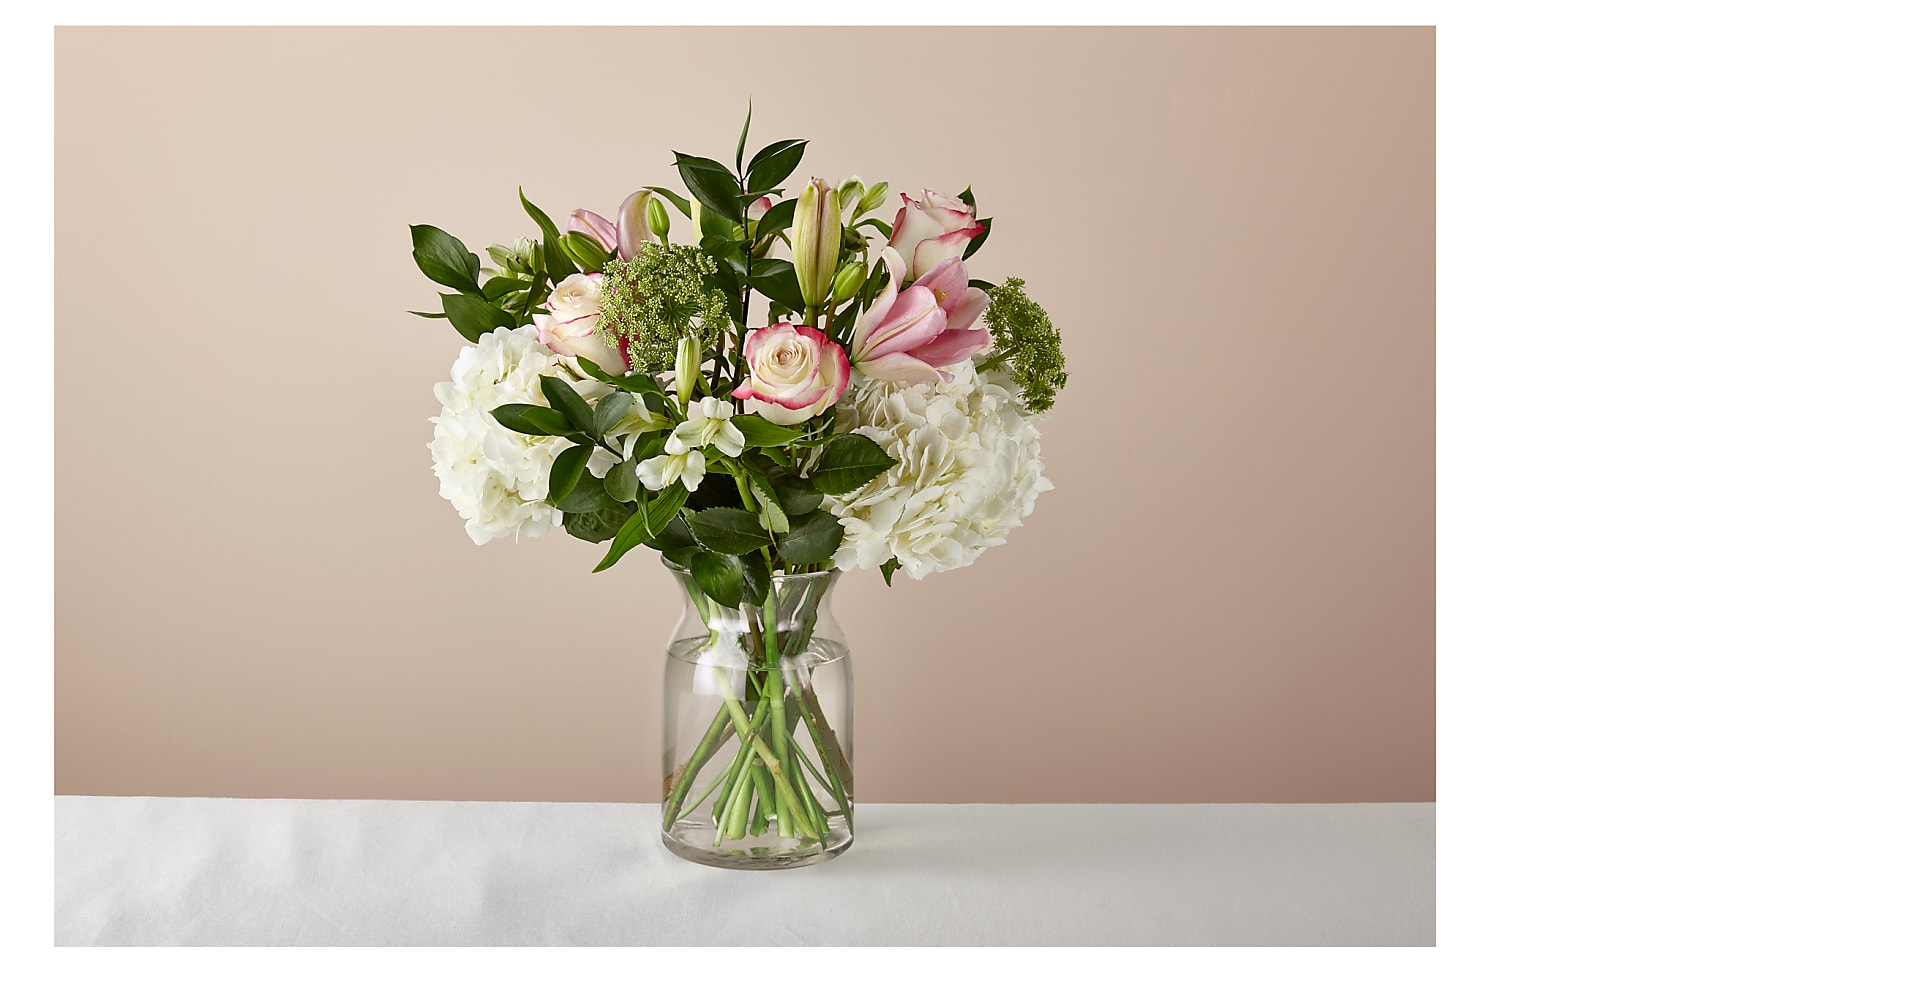 Summer Lovin' Bouquet with Vase - Image 1 Of 2